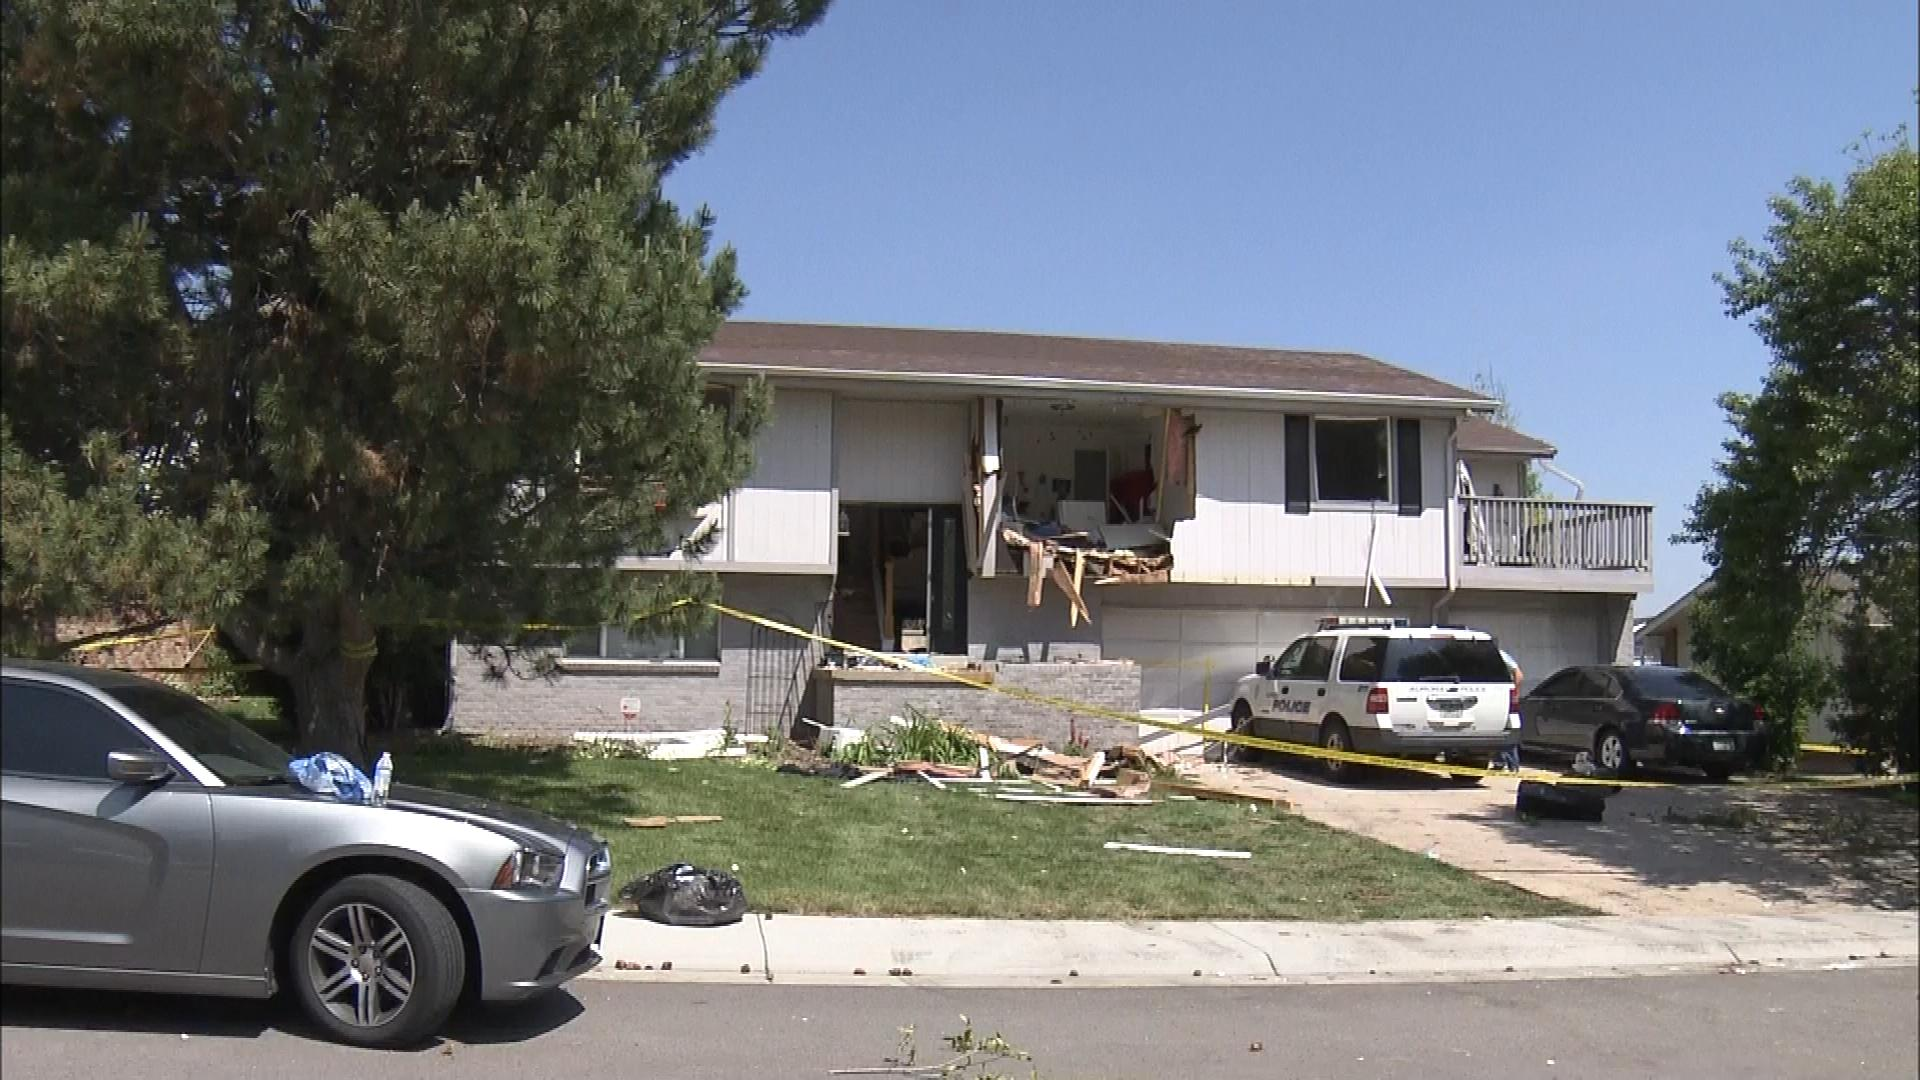 The home following the standoff (credit: CBS)